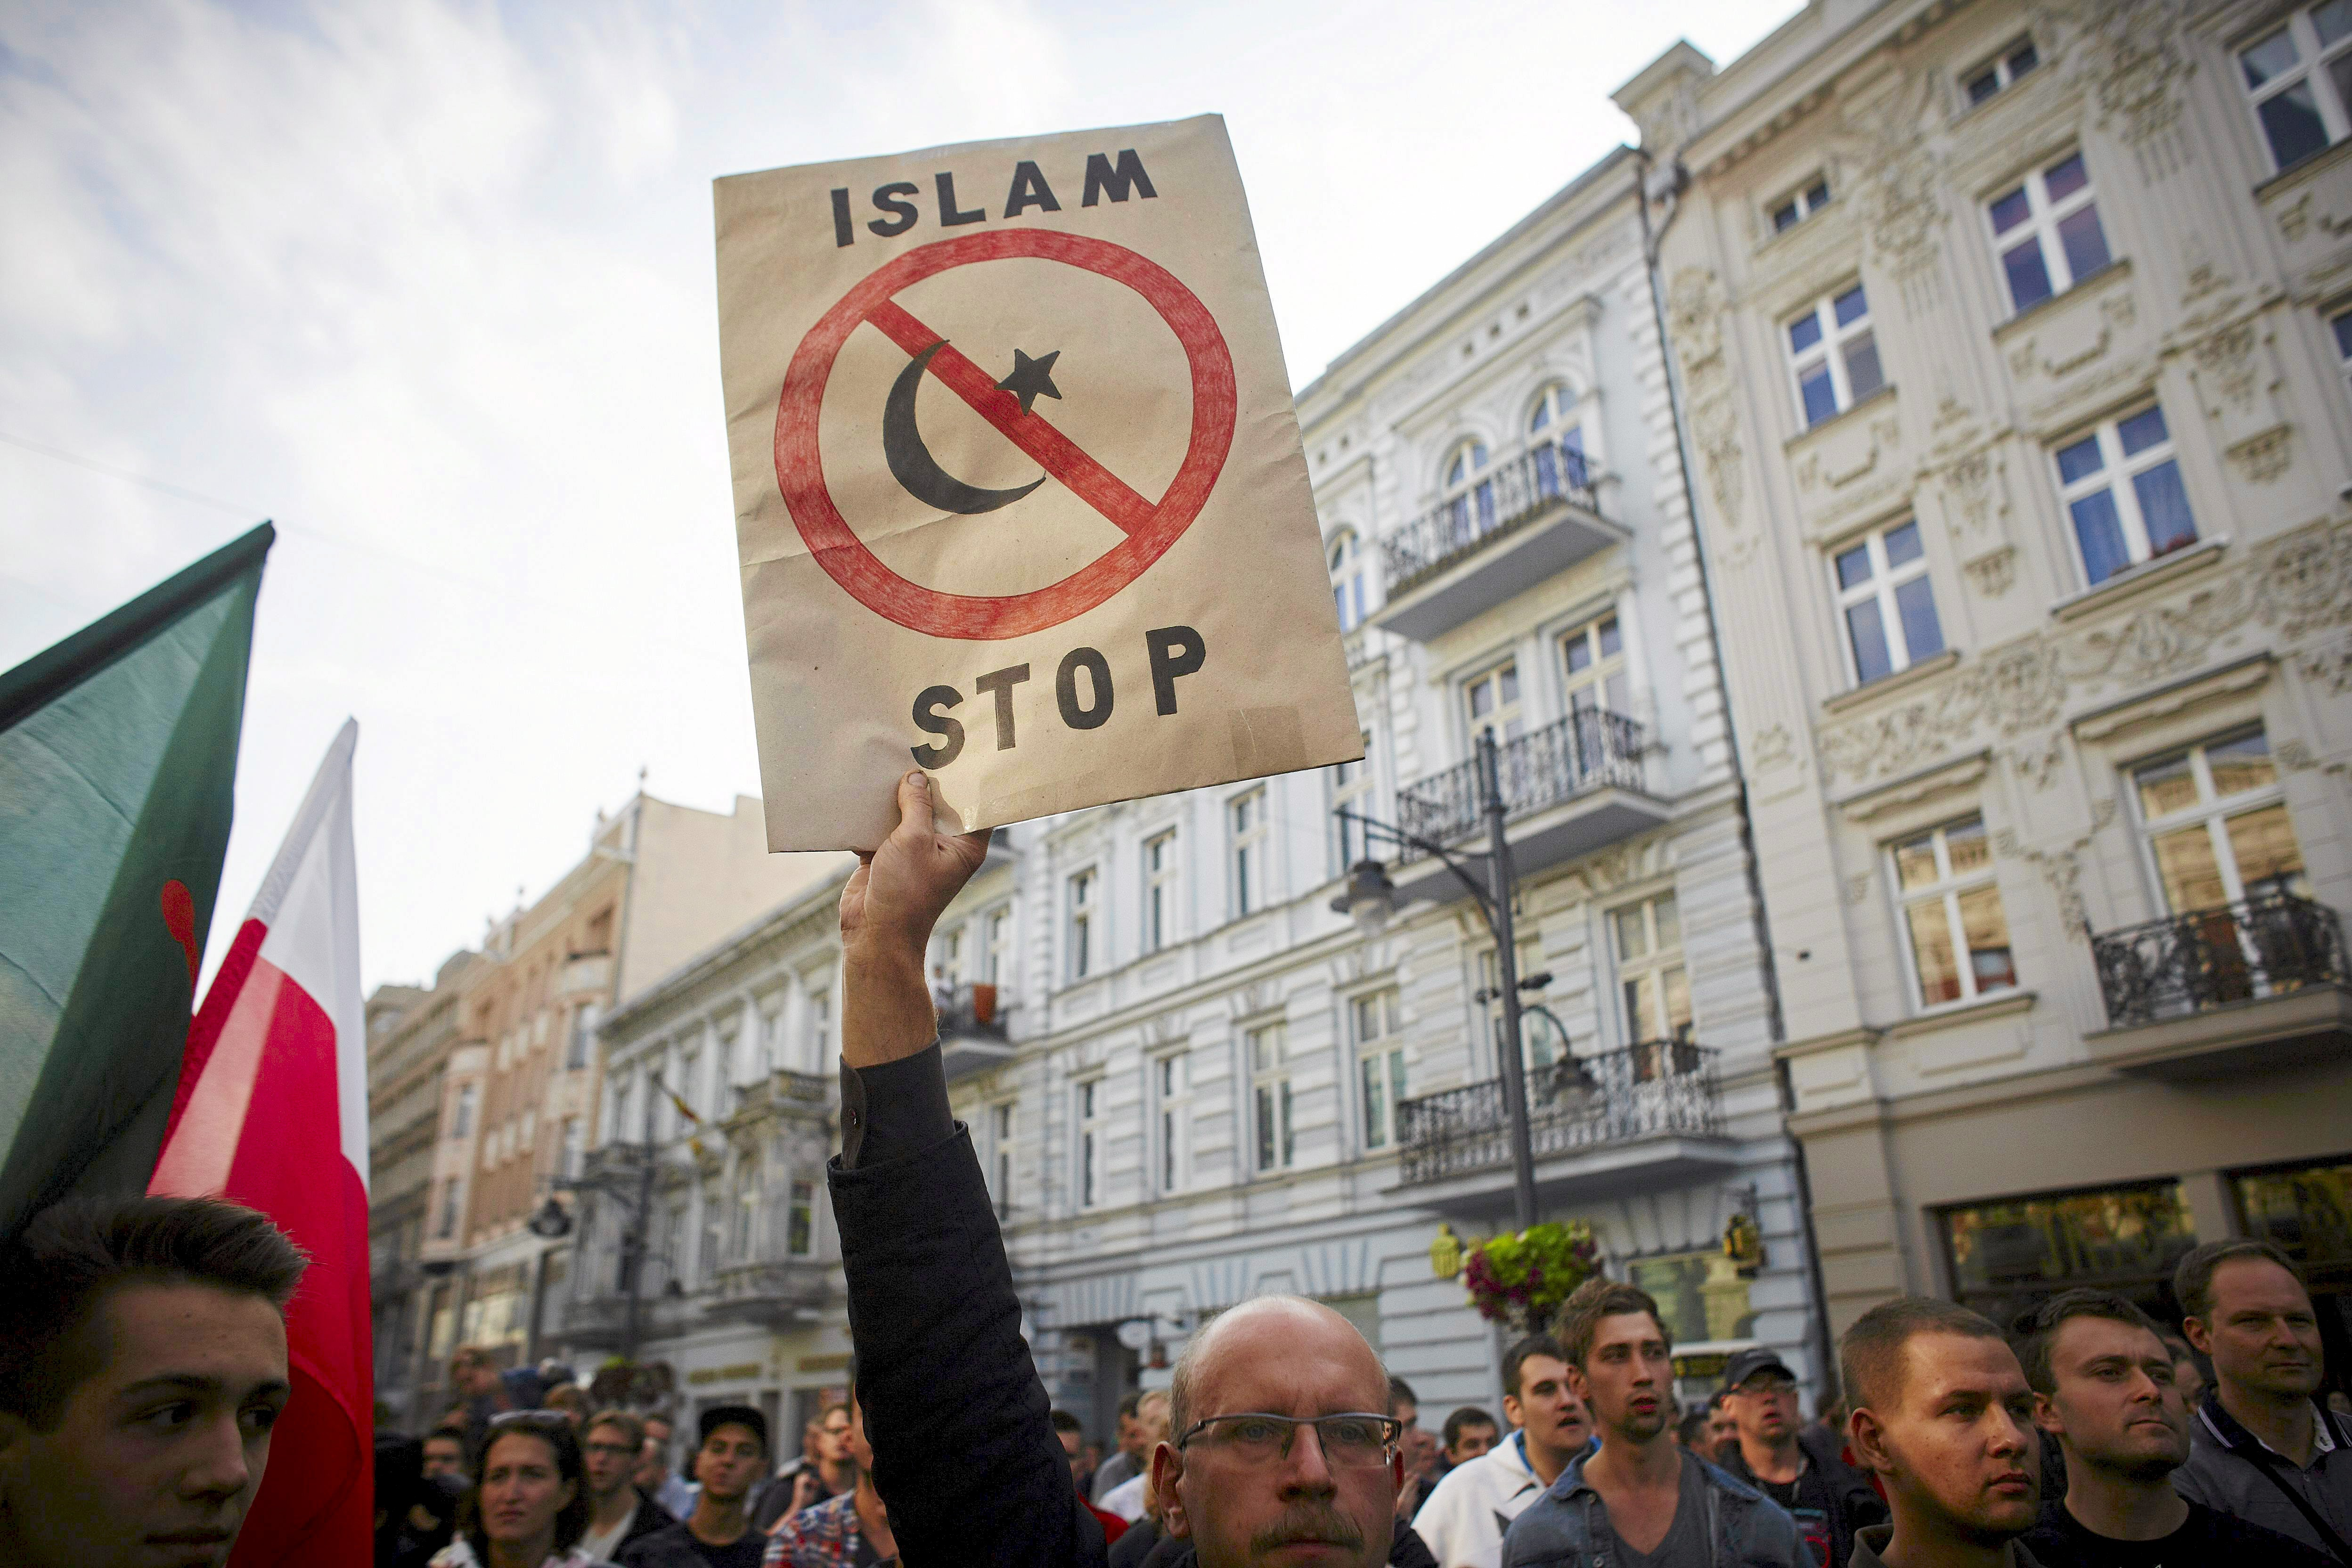 Polish right-wing nationalists at a rally in Lodz, Sept. 12, 2015. Photo credit: Reuters/Marcin Stepien/Agencja Gazeta